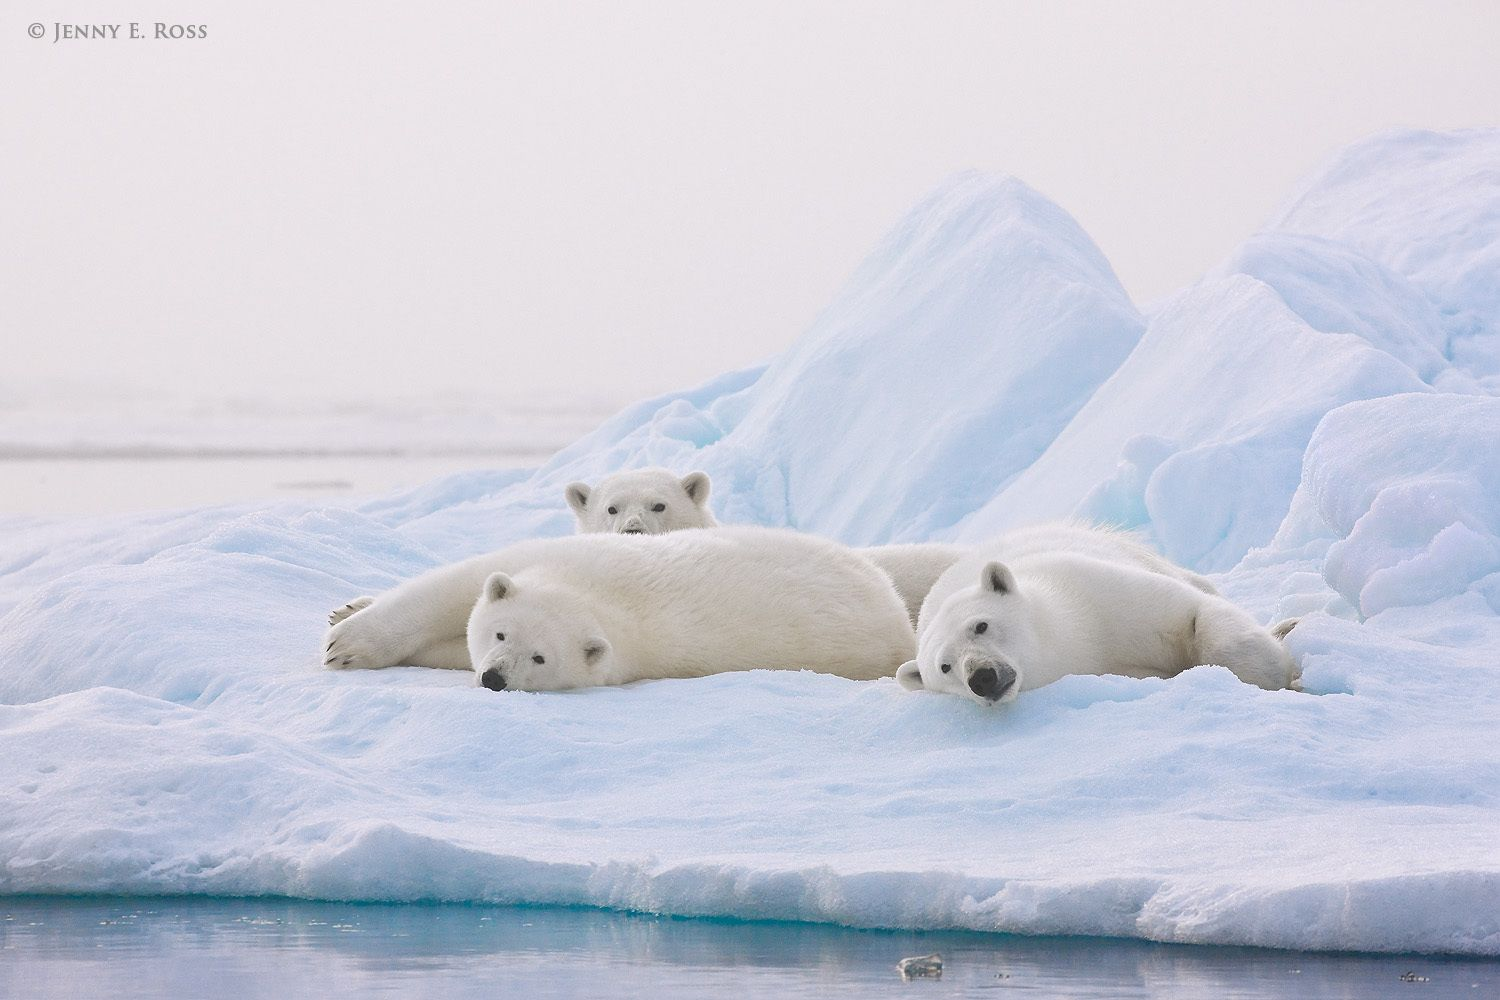 A polar bear mother and her twin two-year-old cubs resting on a floe of sea ice in heavy fog at twilight.